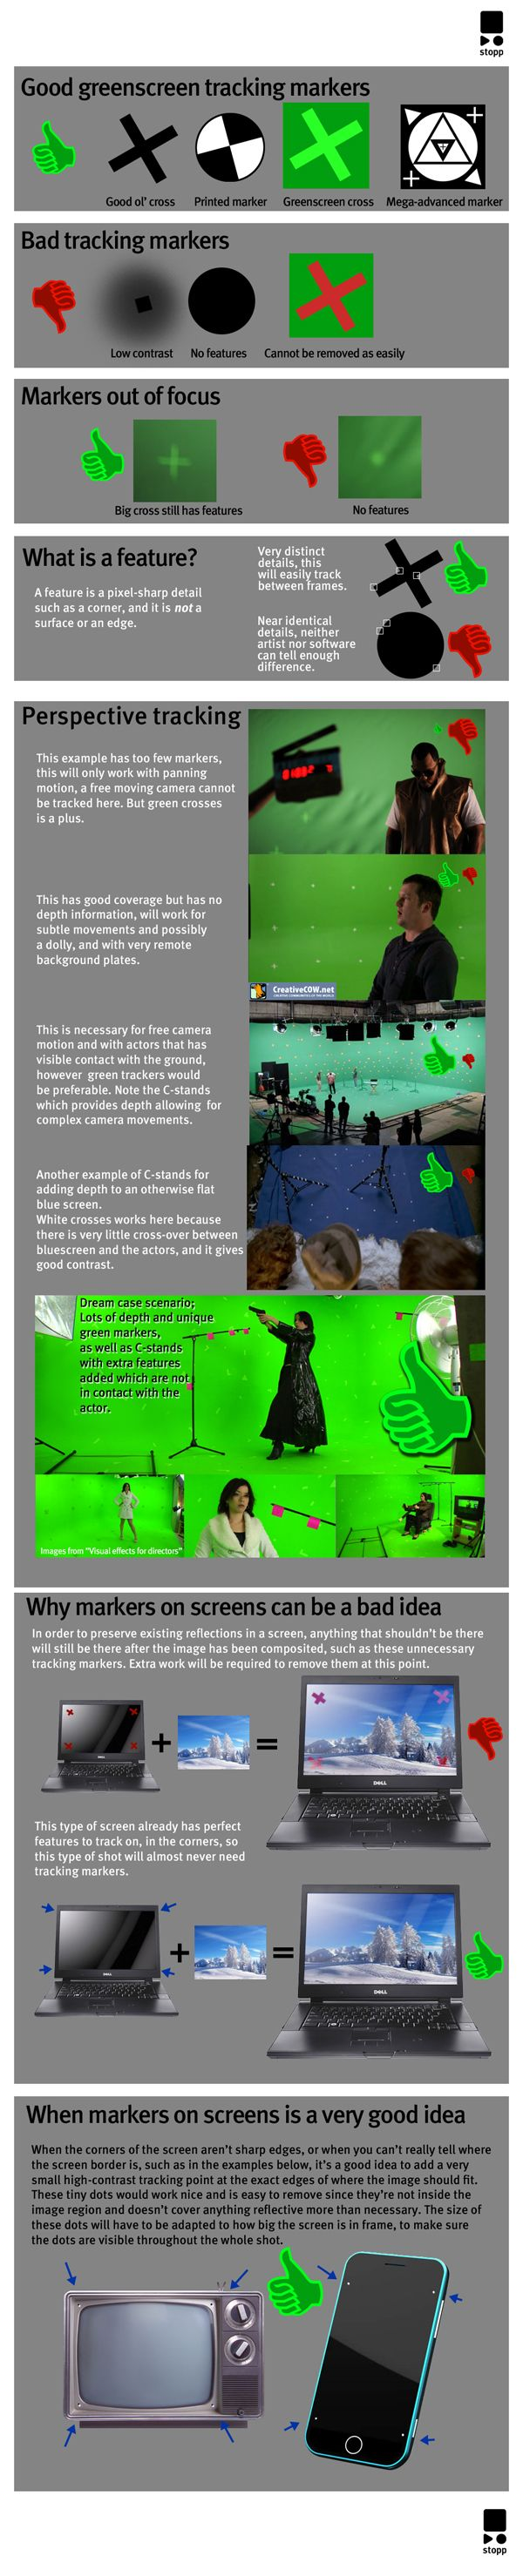 How to prepare for tracking shots | Stopp lab